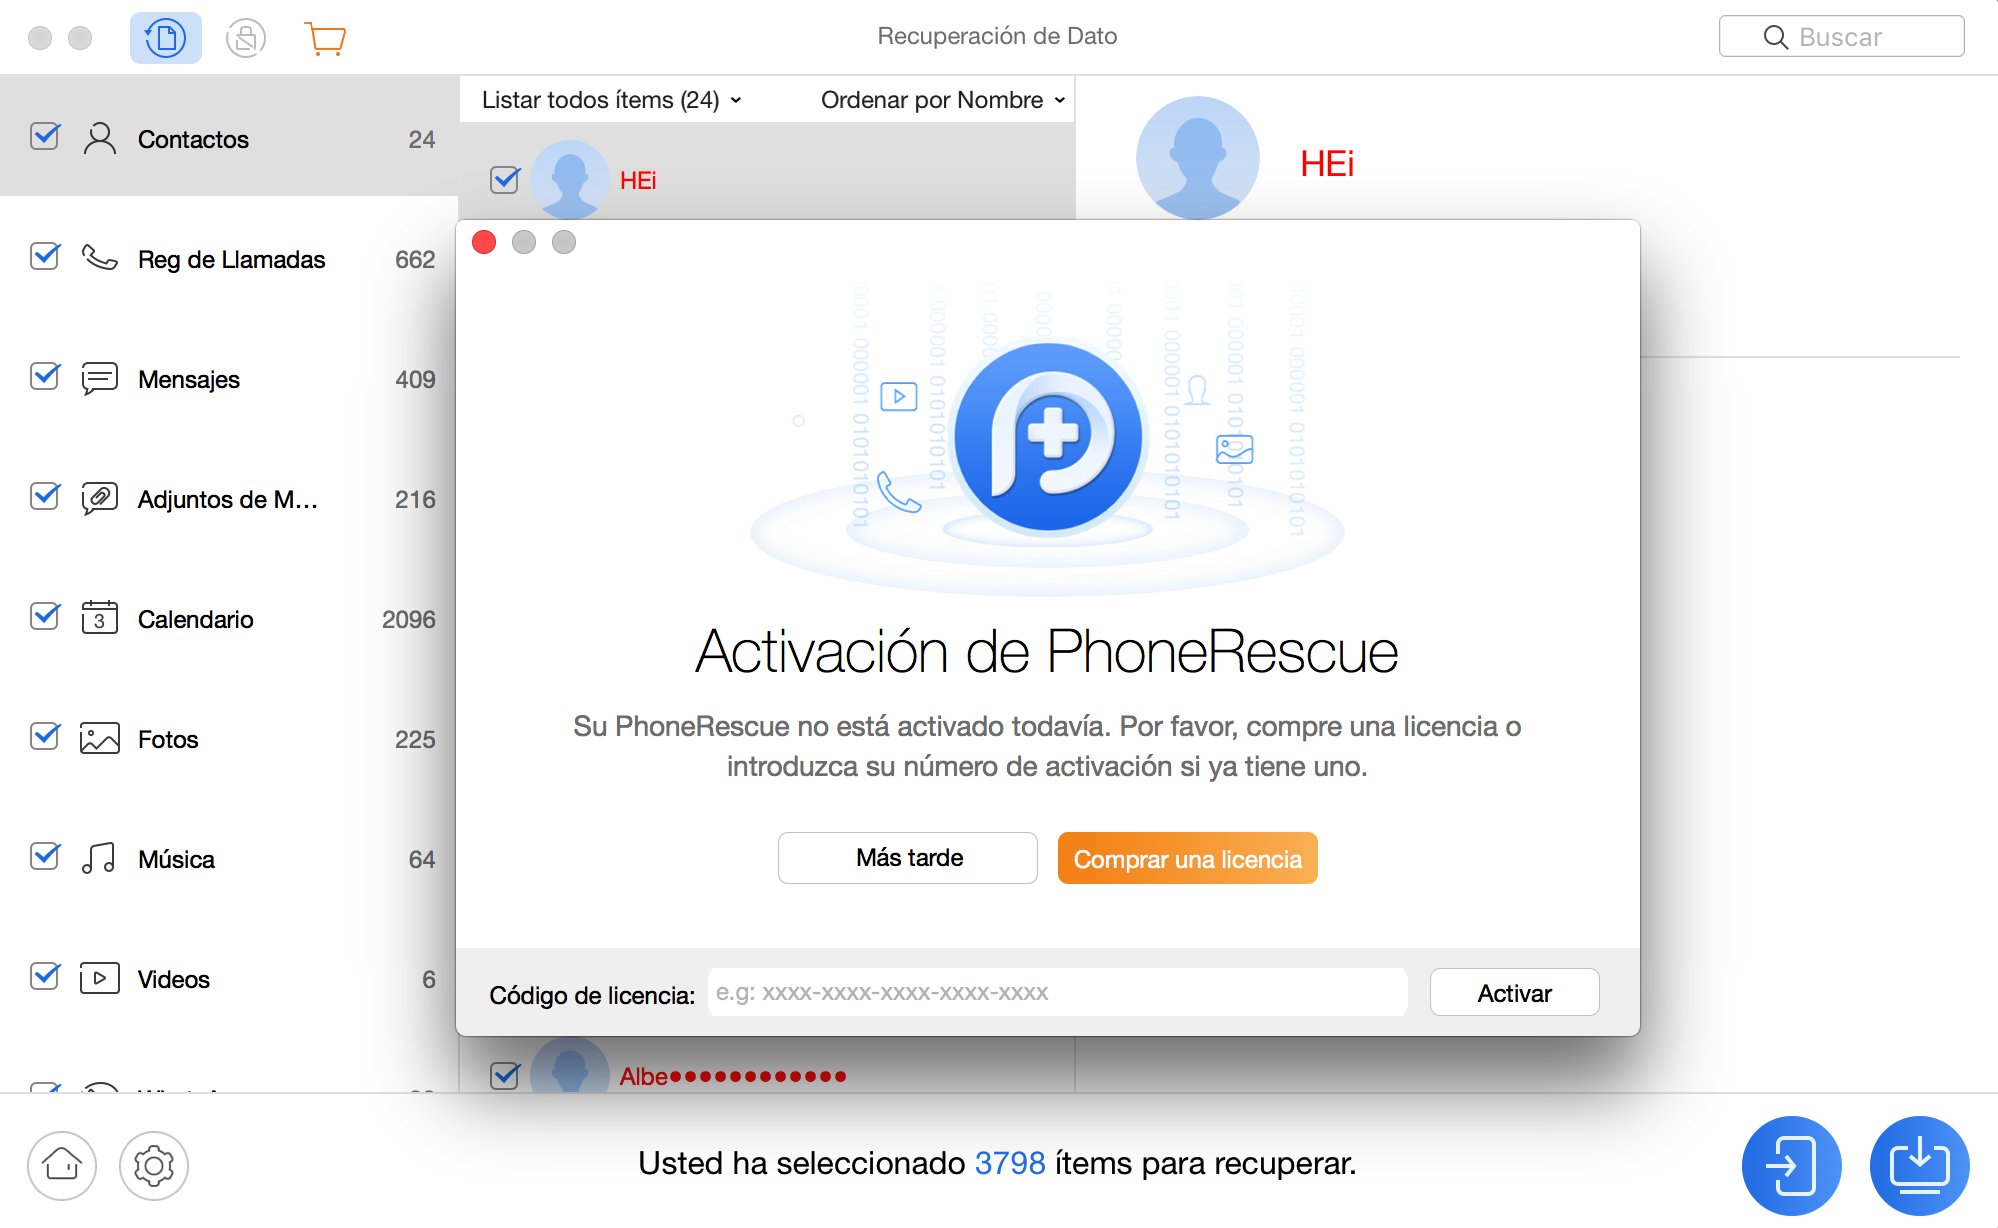 Registering PhoneRescue for MOTOROLA